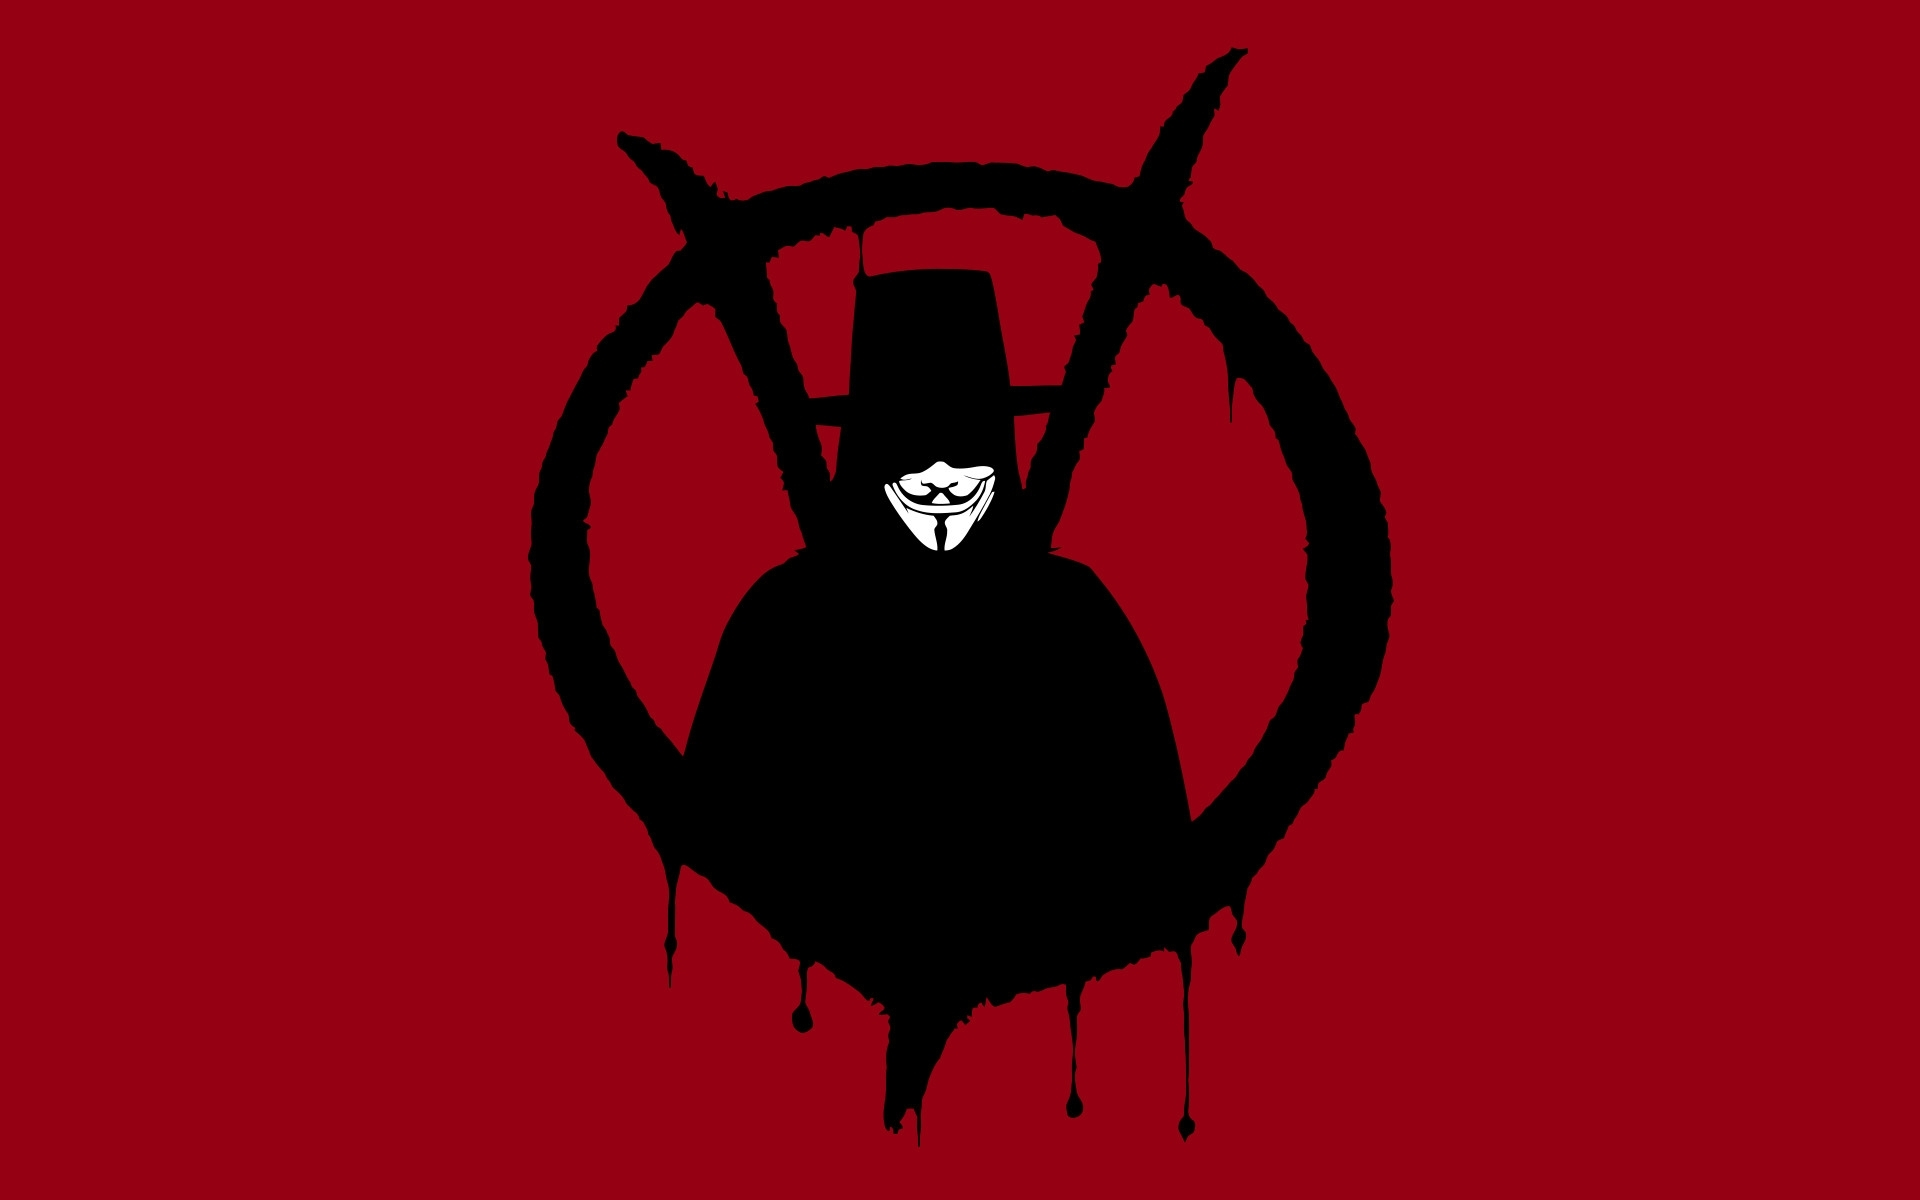 v for vendetta wallpaper hd (75+ images)